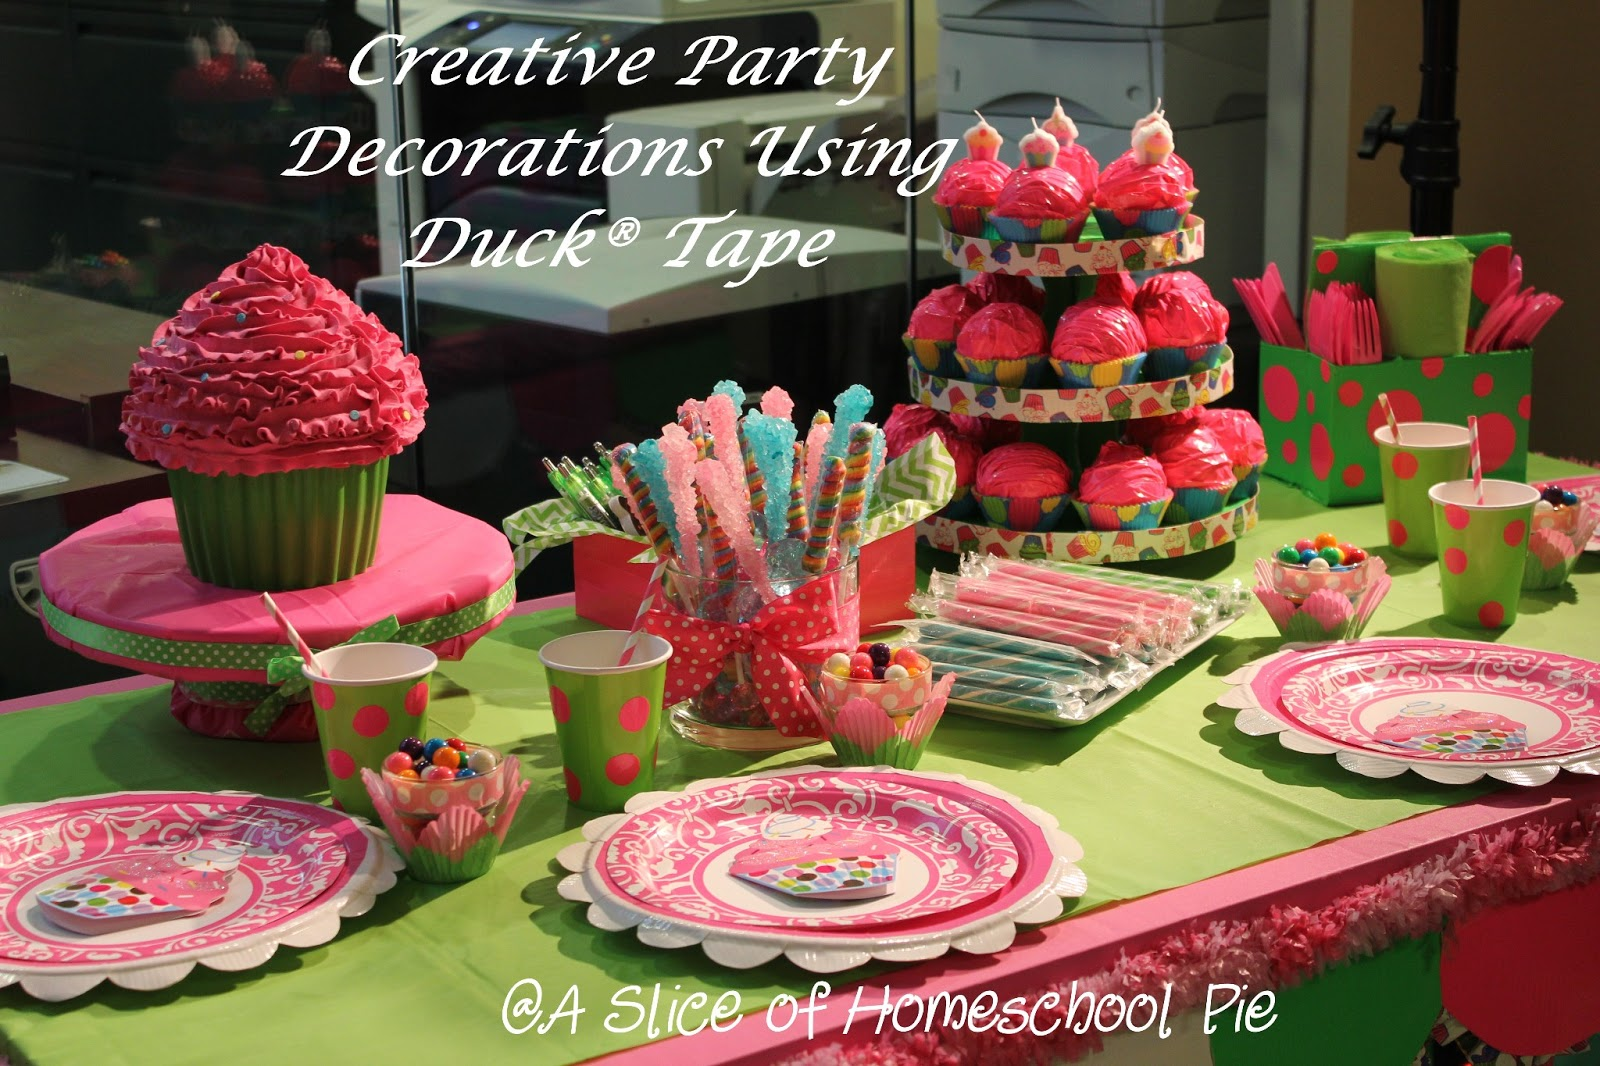 A Slice of Homeschool Pie: Beautiful Party Decorations Using Duck